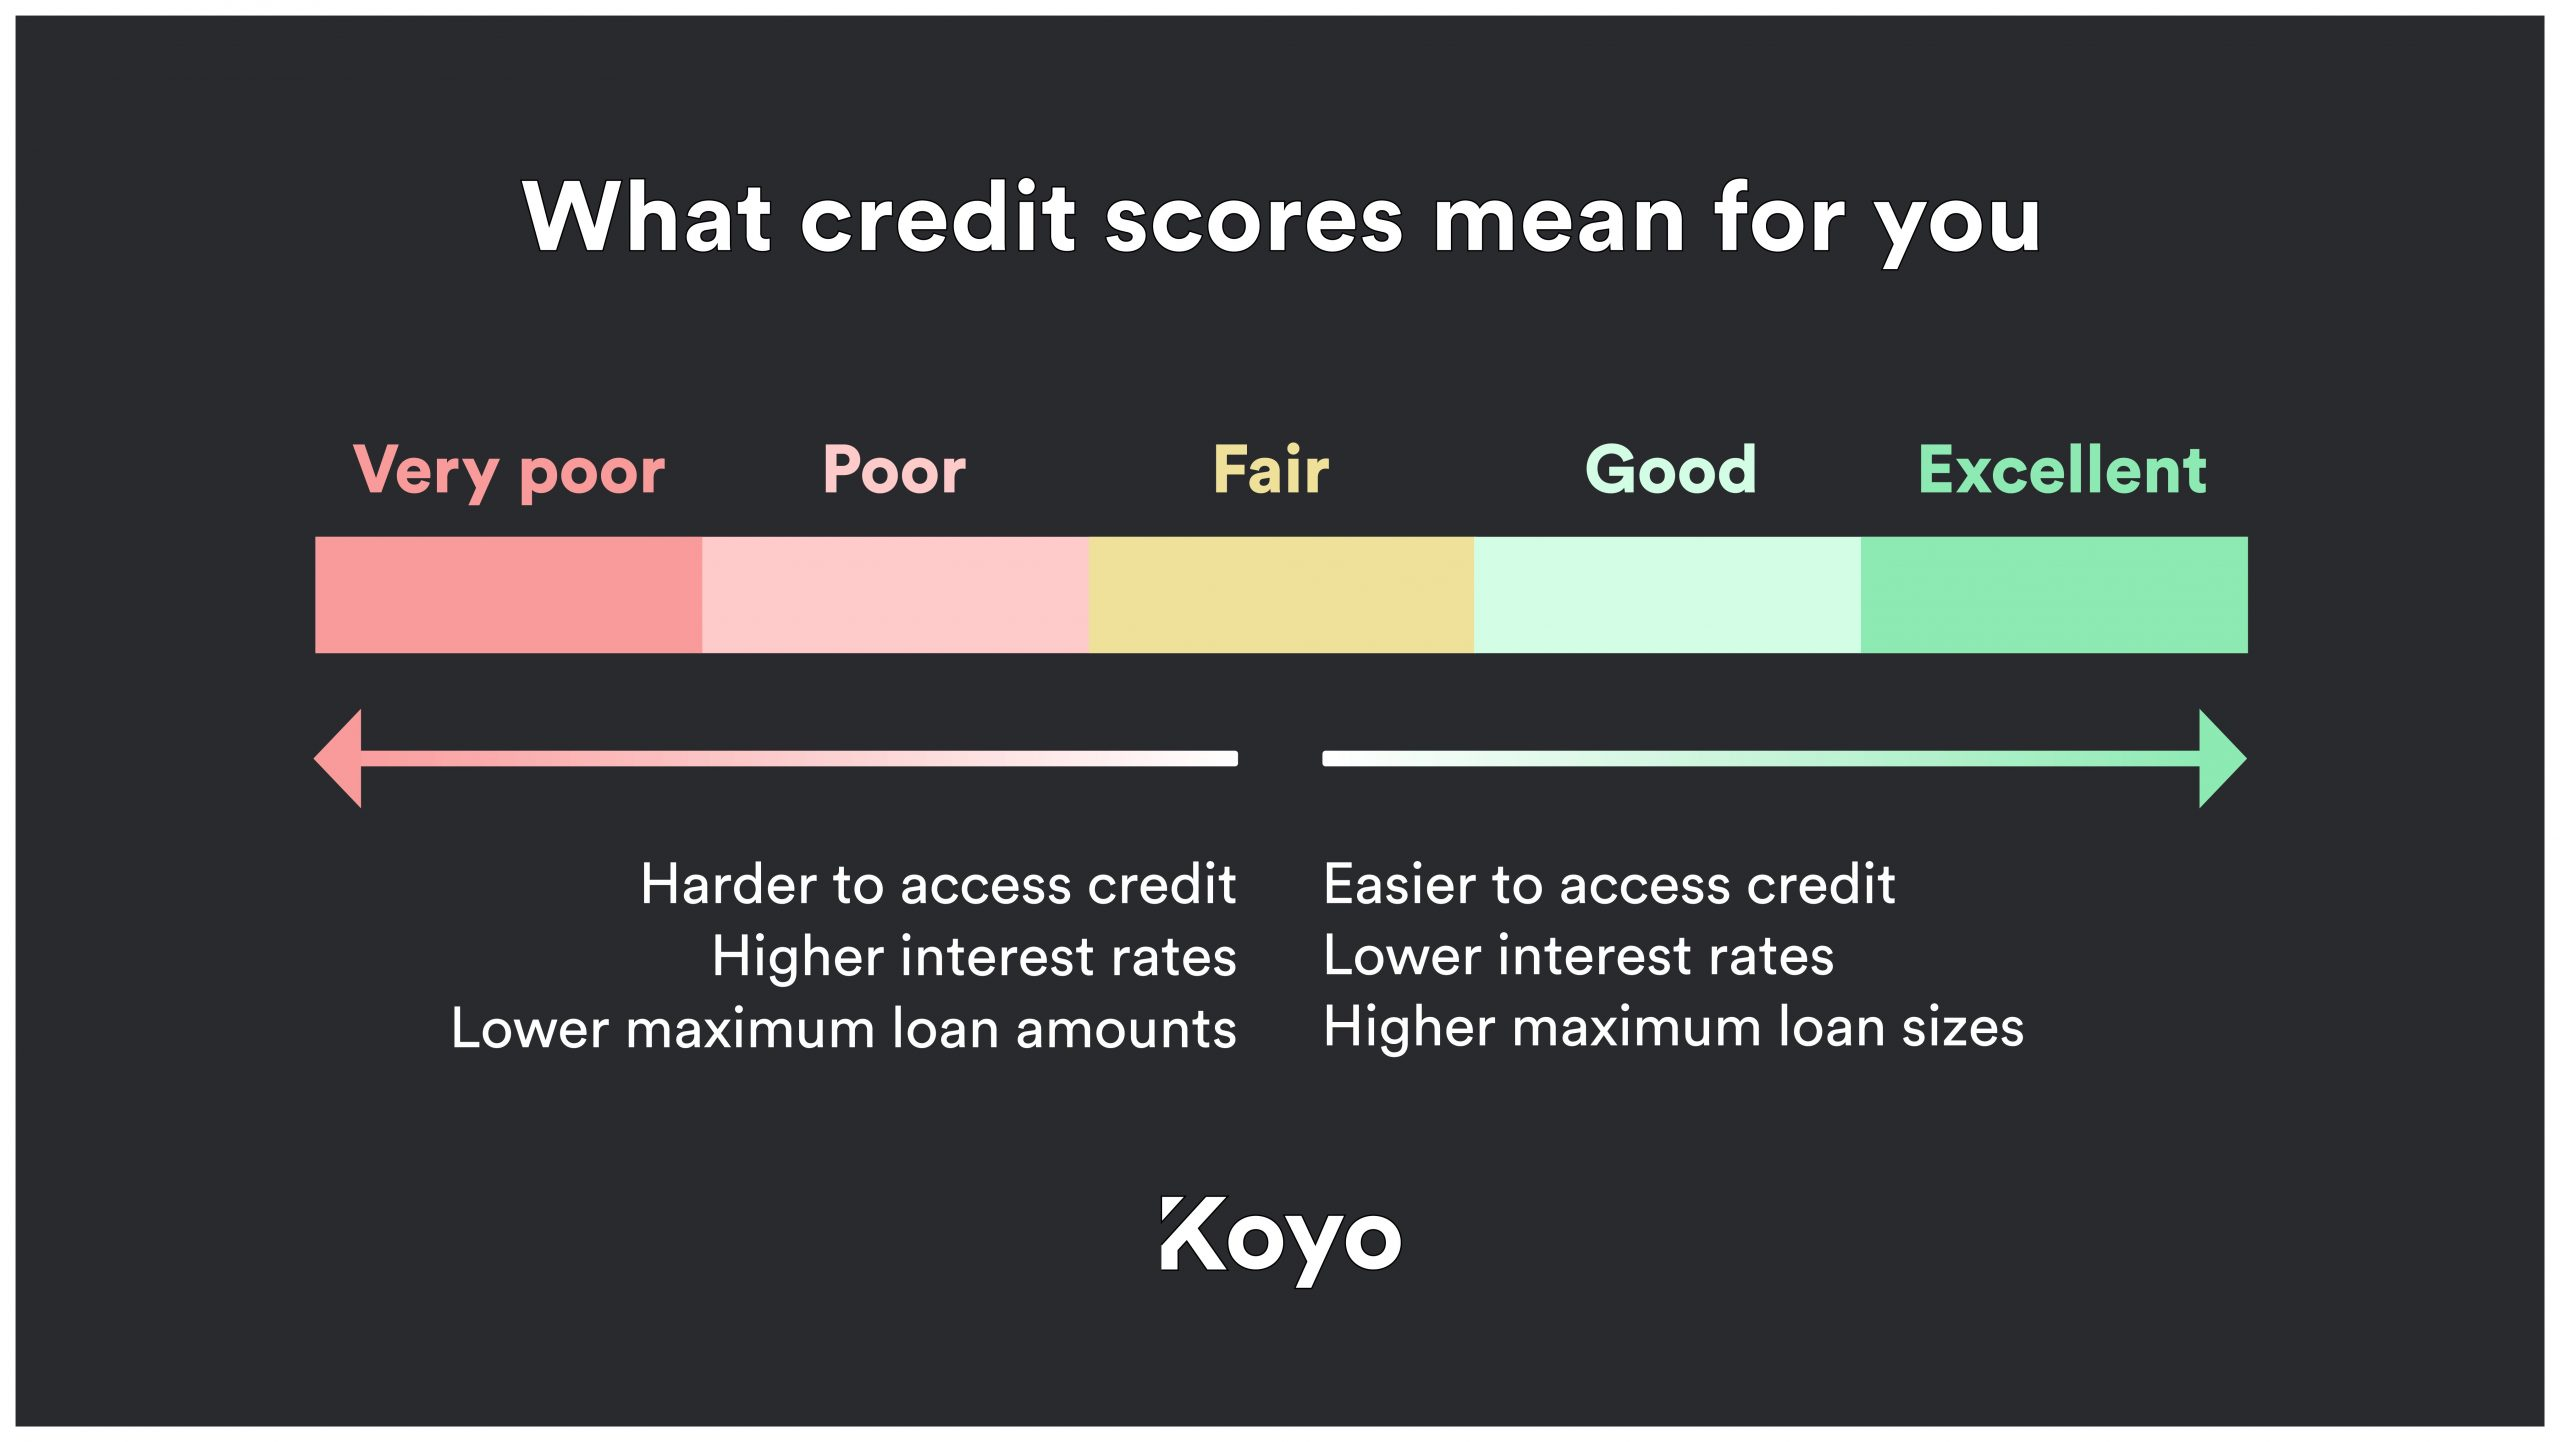 A visual representation of how credit scores may affect access to credit